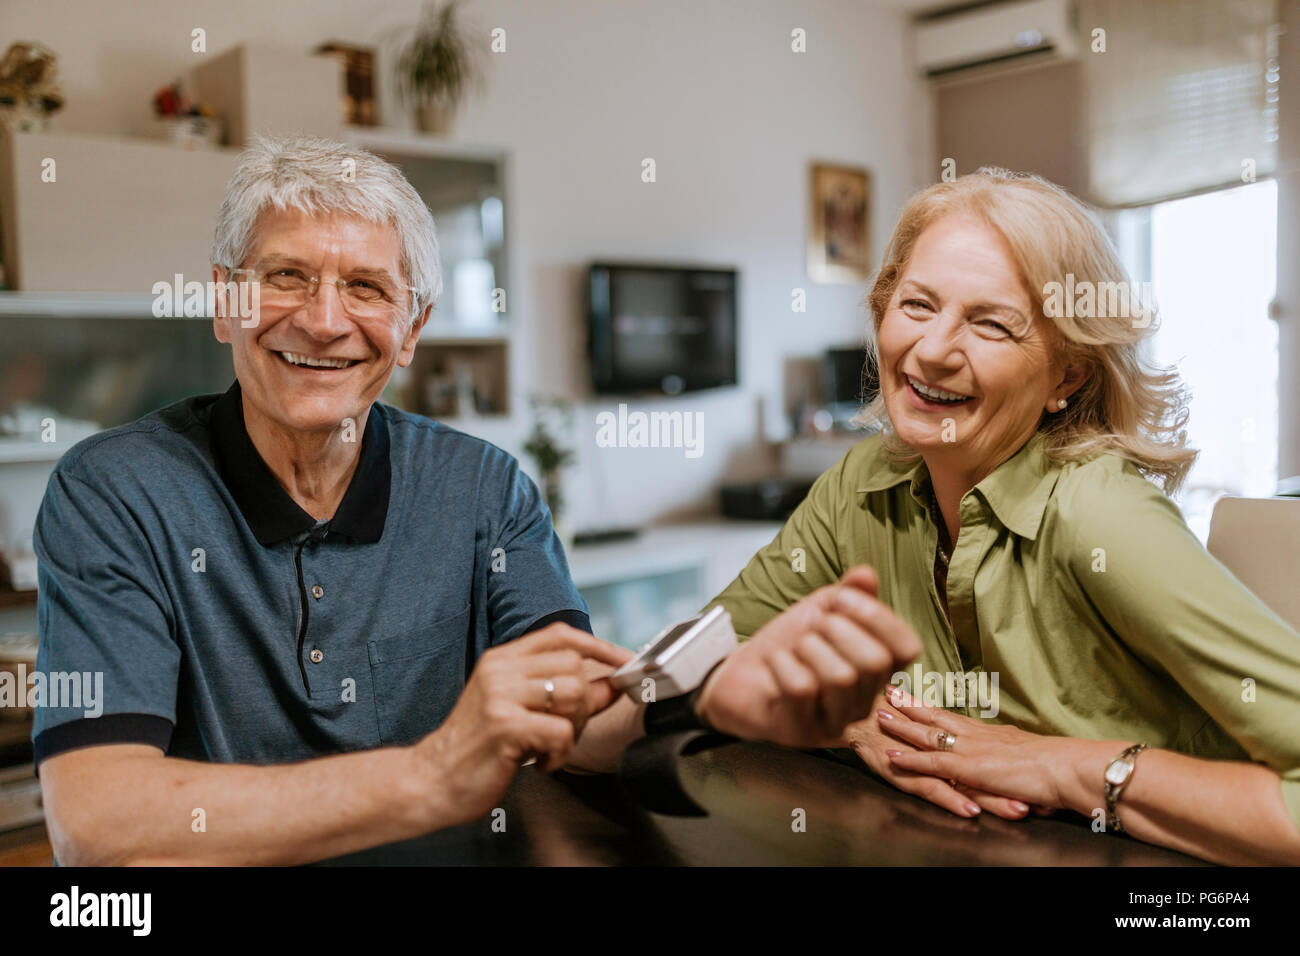 Smiling senior couple with blood pressure gauge - Stock Image